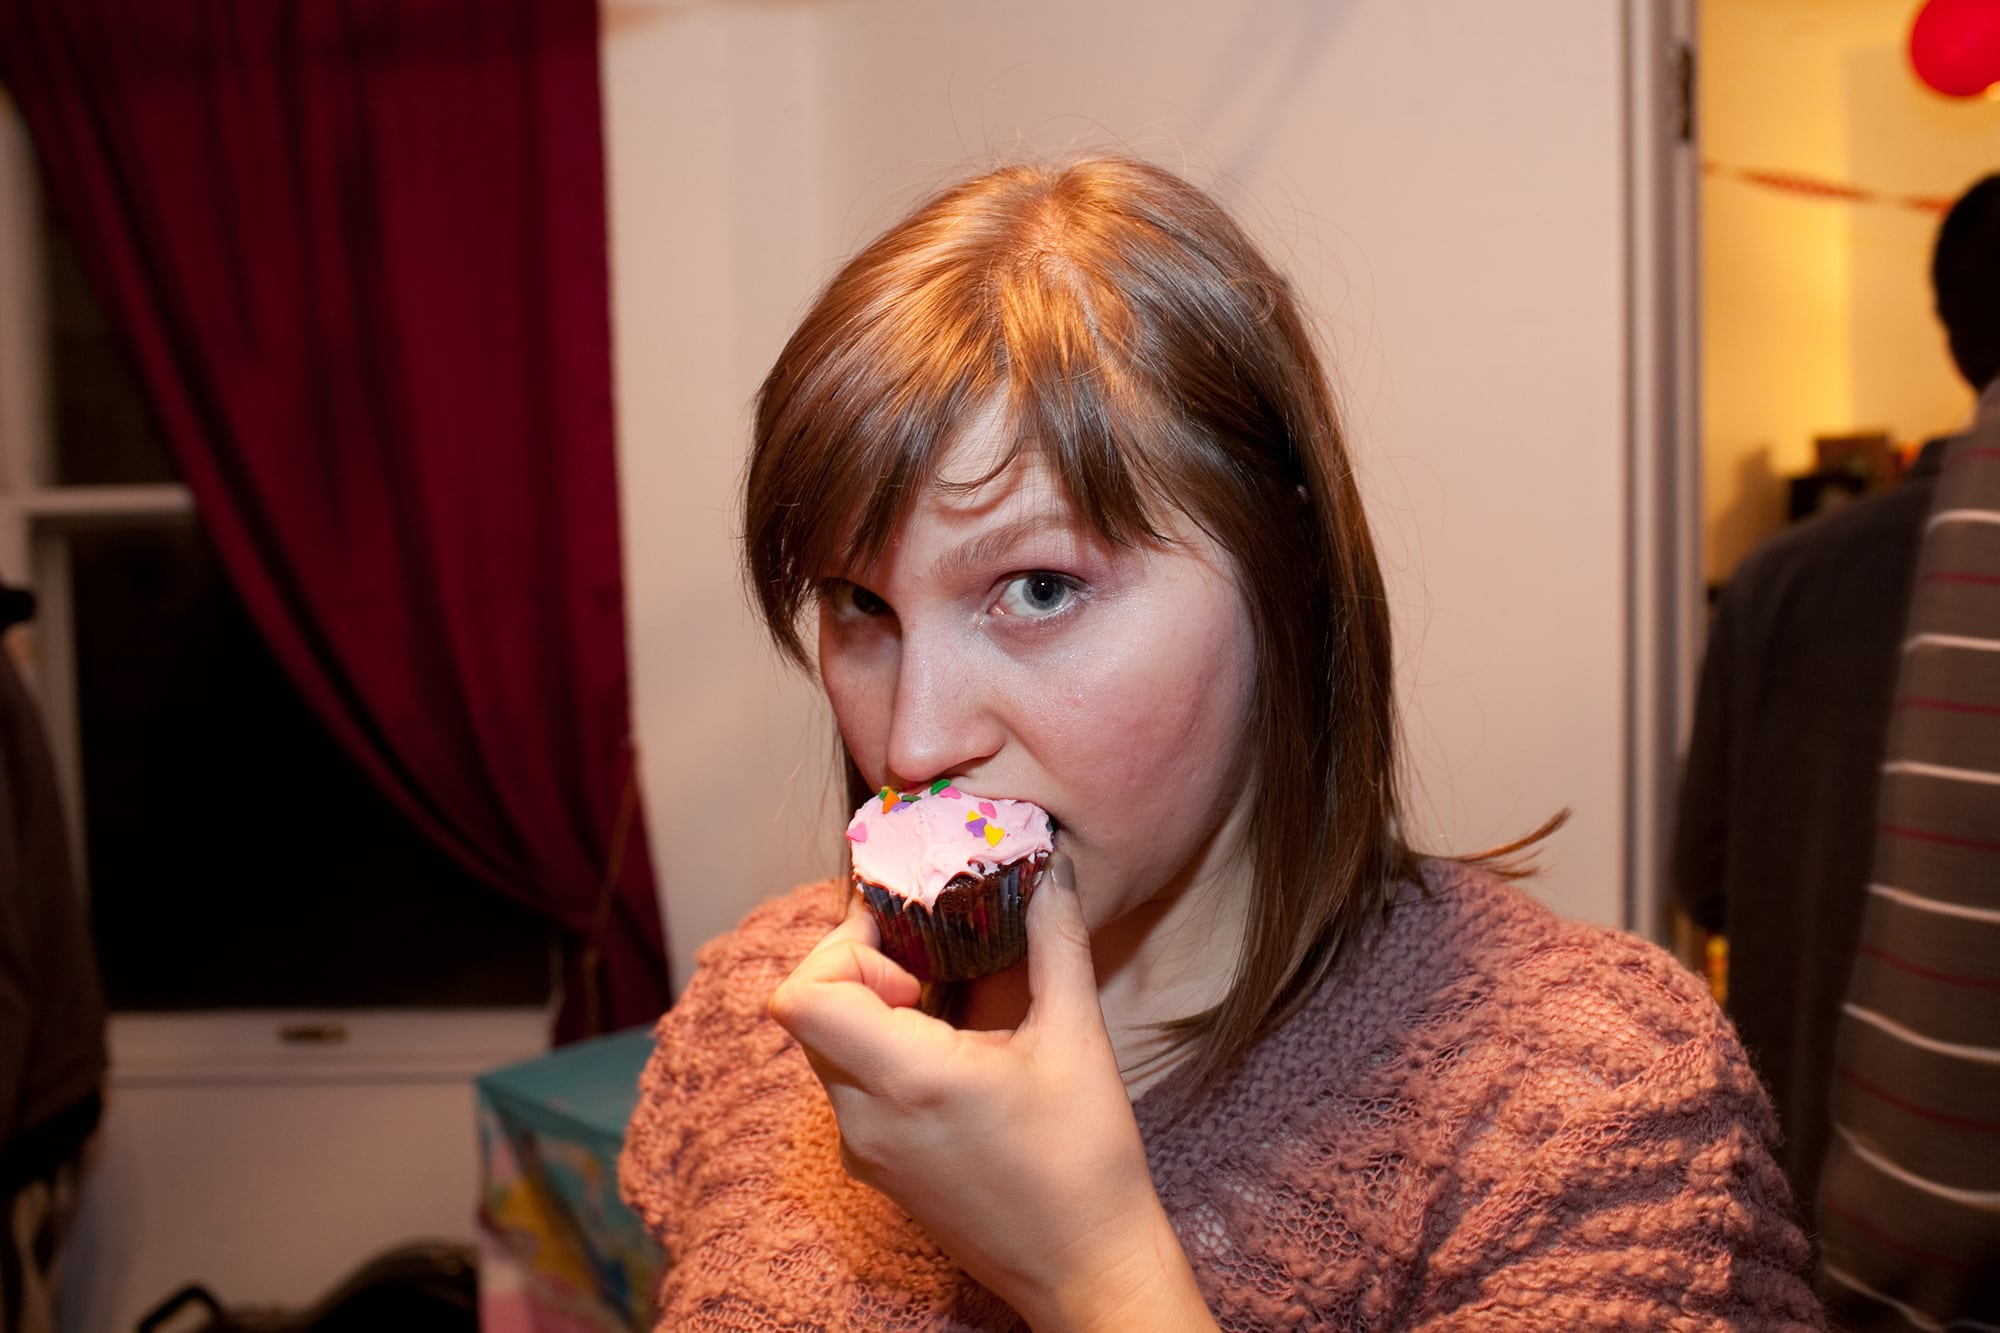 My thirtieth birthday party. I eat a birthday cupcake.